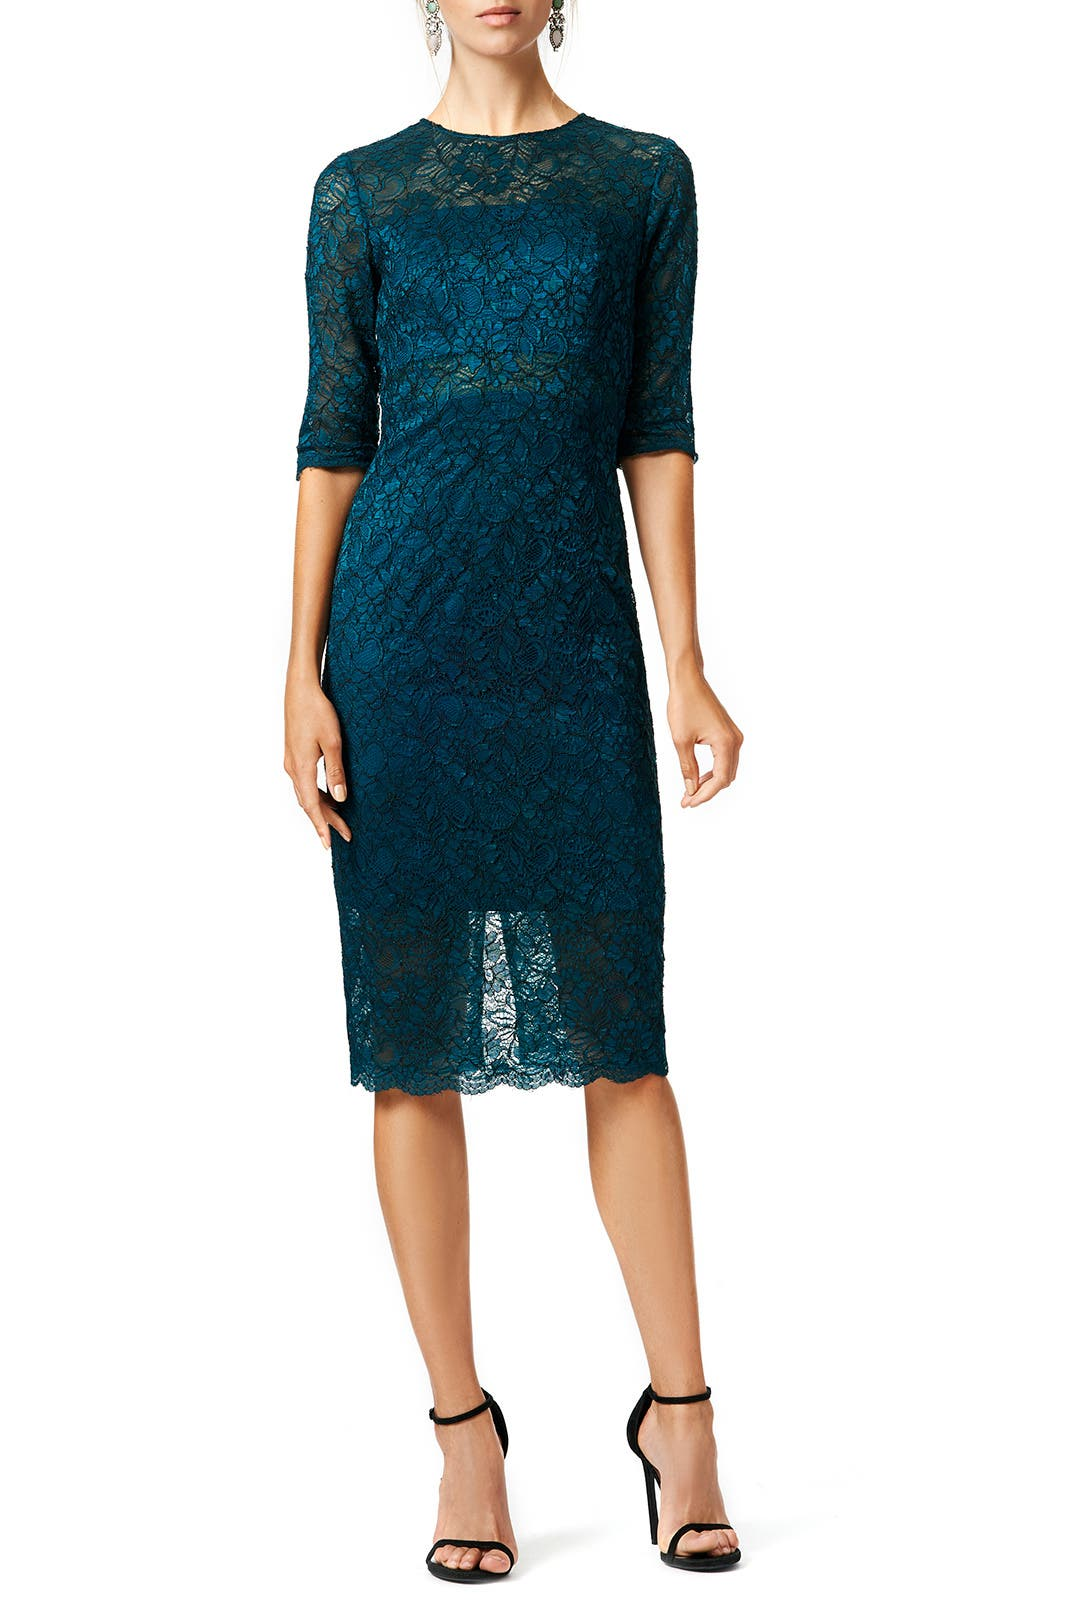 Lace Me In Teal Dress By Ml Monique Lhuillier For 35